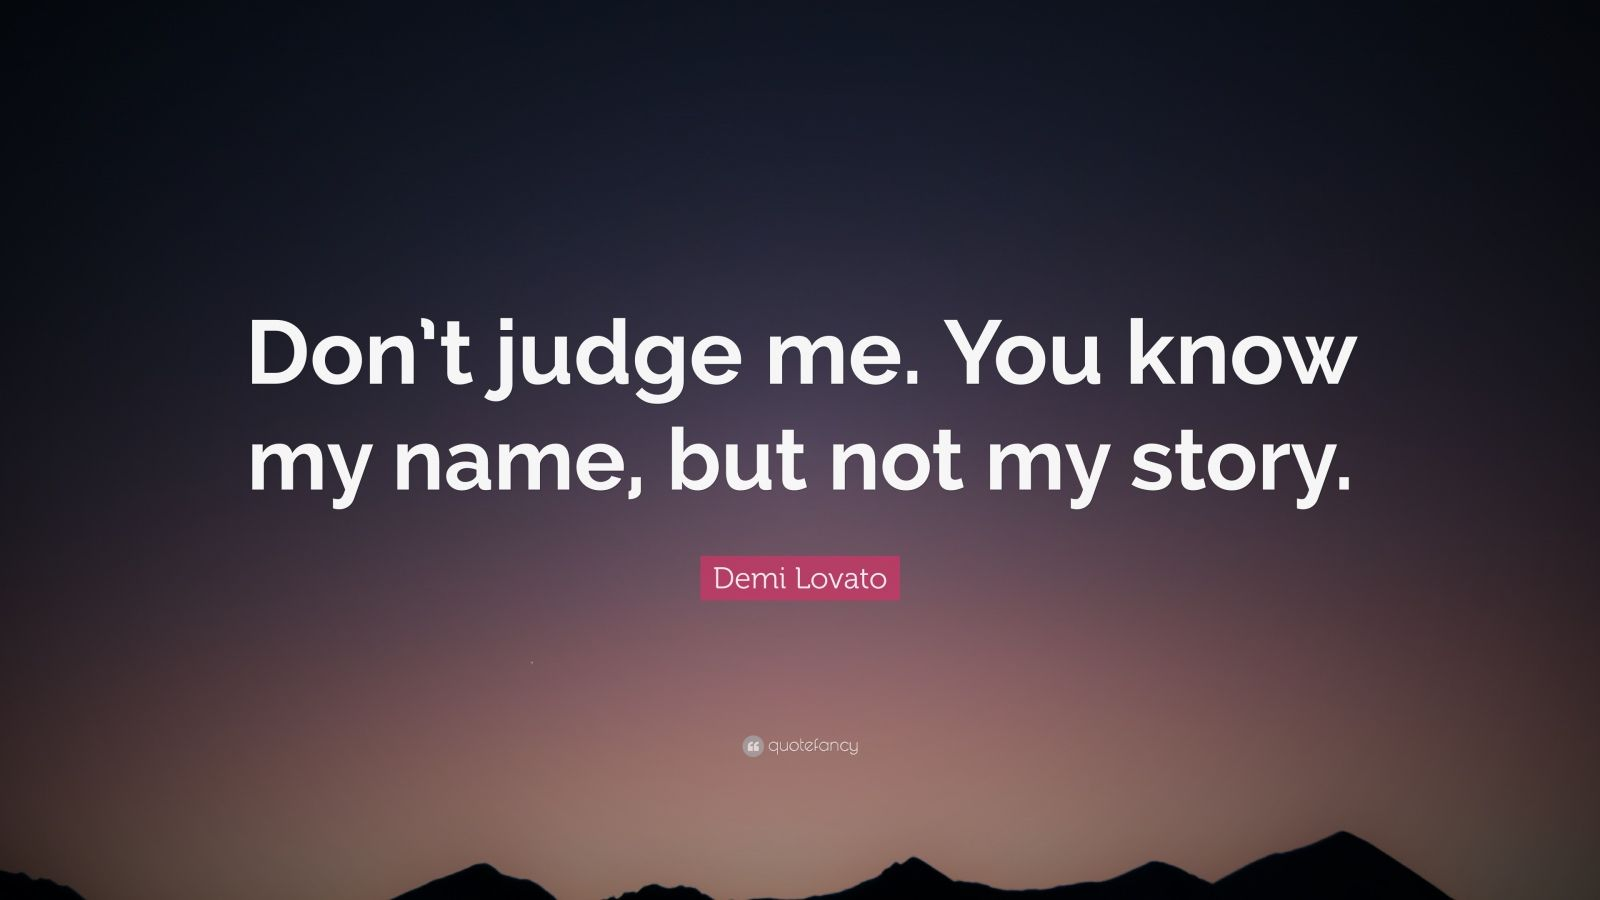 "Judging Quotes: ""Don't judge me. You know my name, but not my story."" — Demi Lovato"